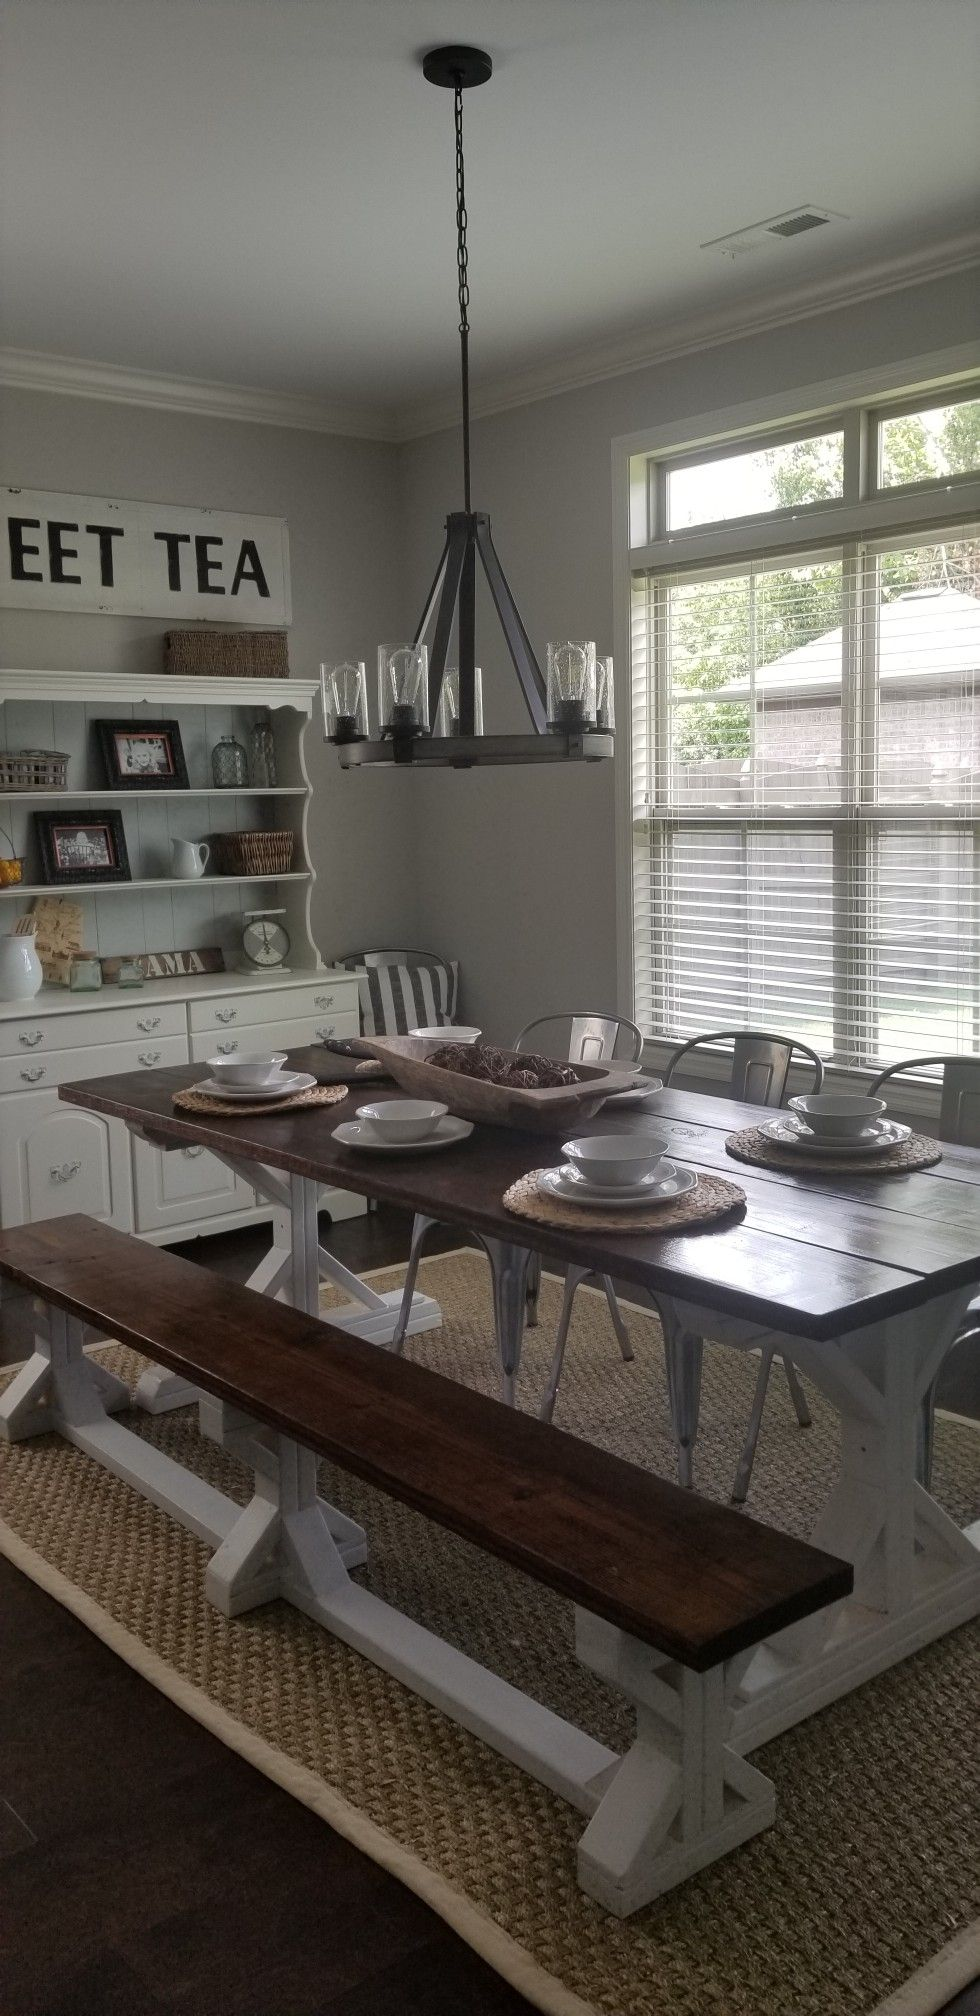 Breakfast area | Dining bench, New homes, Home decor